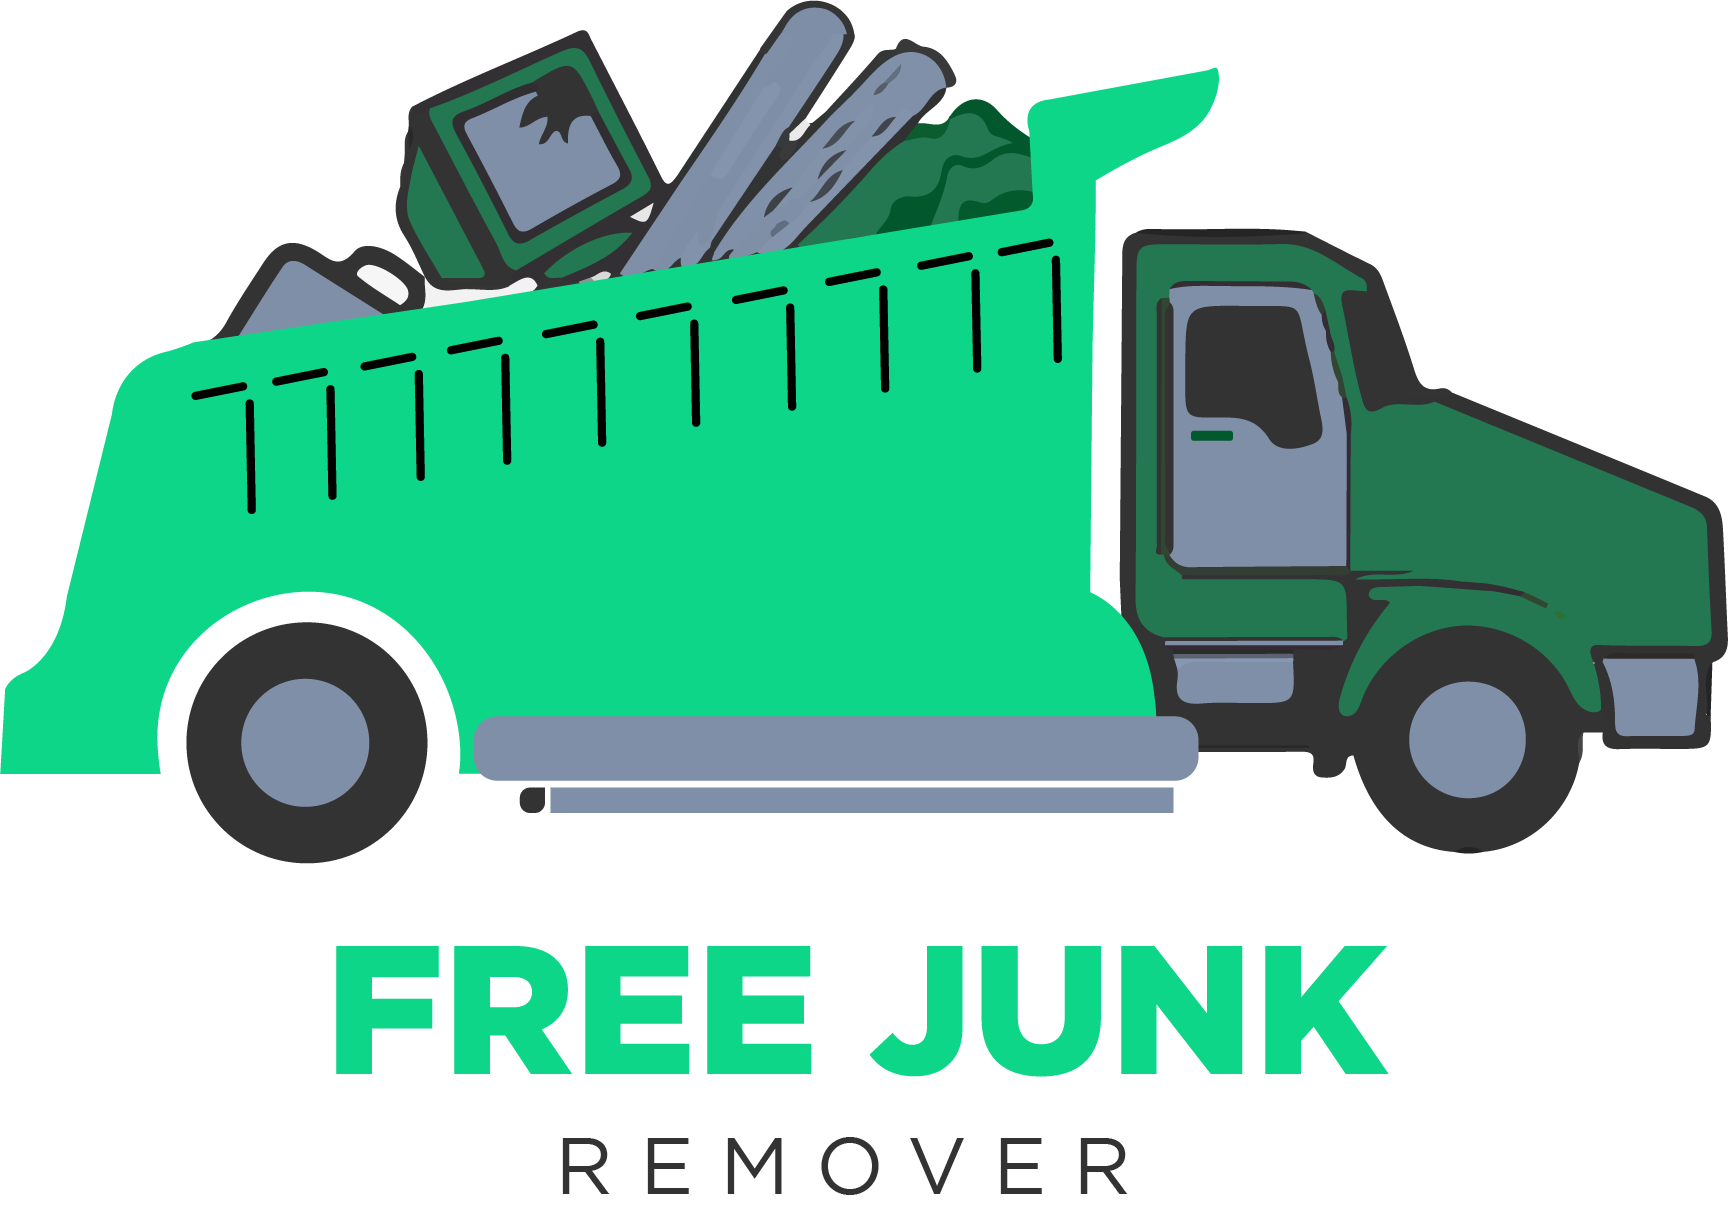 Free junks Removal